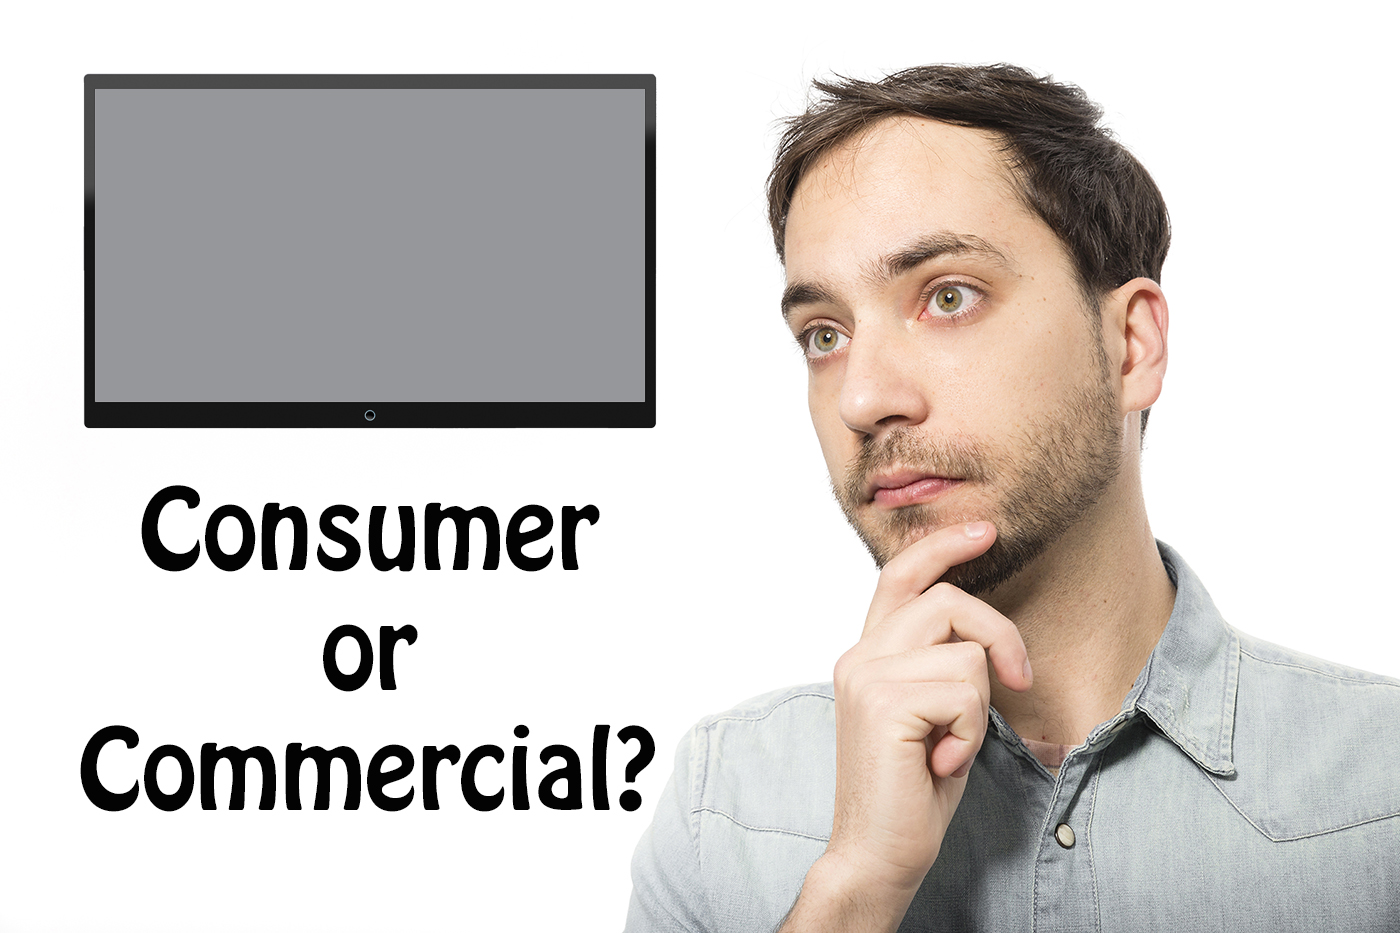 Consumer vs Commercial